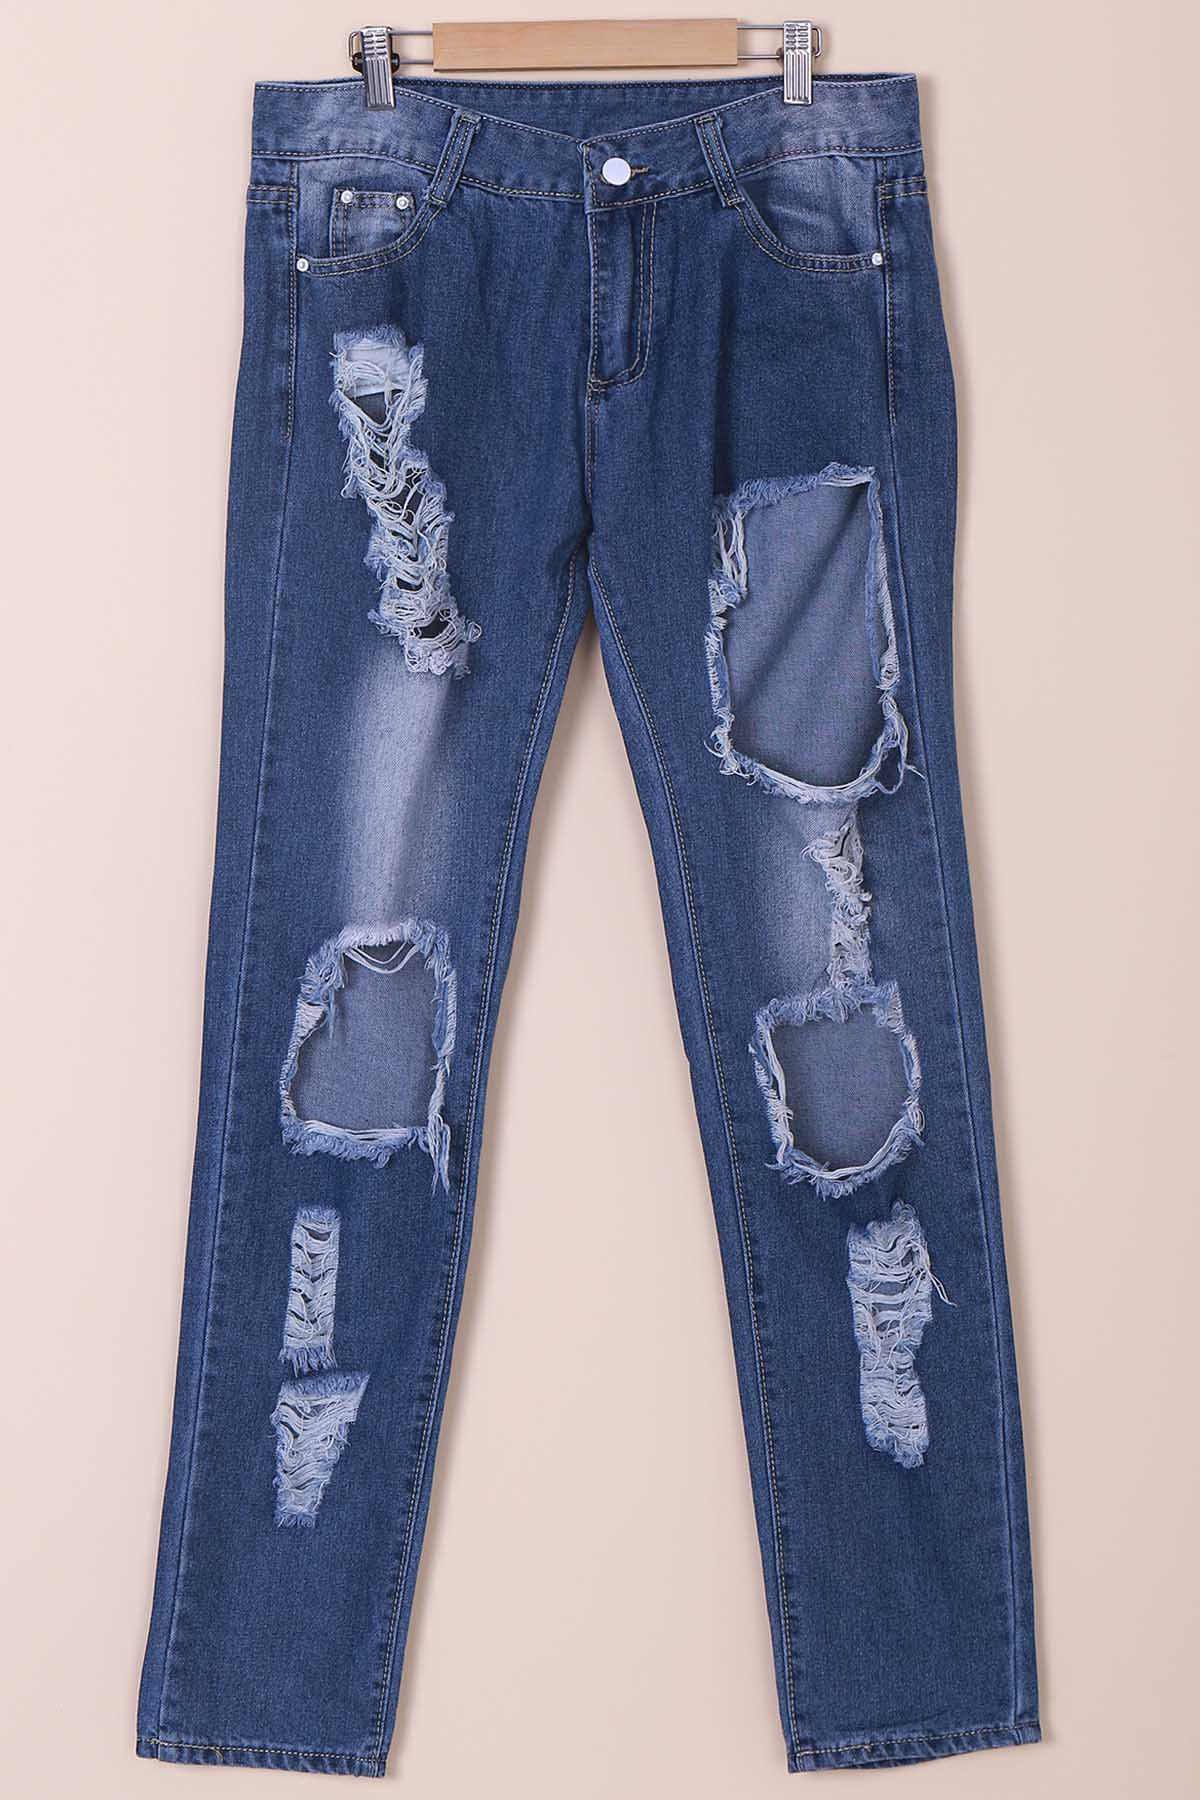 Casual Women's Mid-Waisted Destroy Wash Ripped Jeans - BLUE M